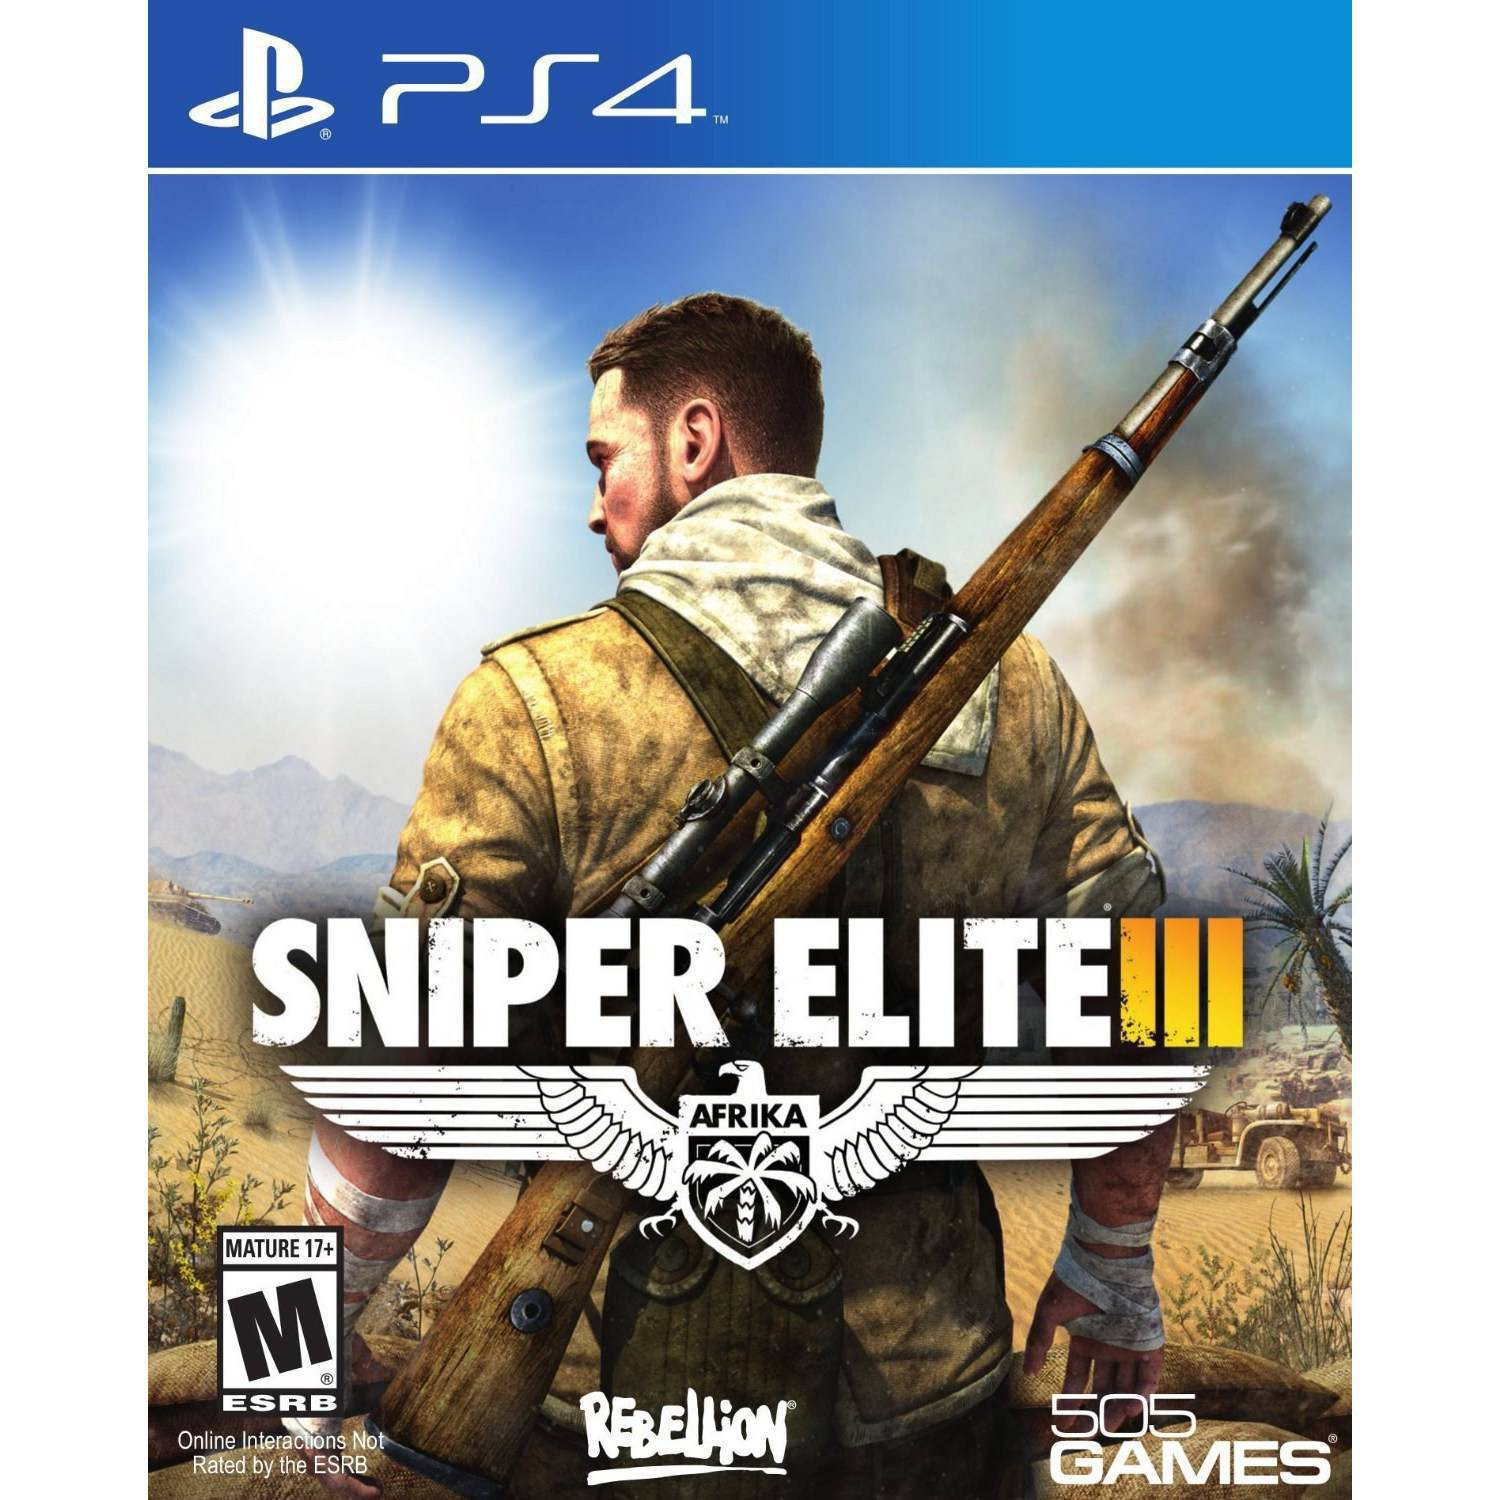 Sniper Elite III (PS4) - Pre-Owned